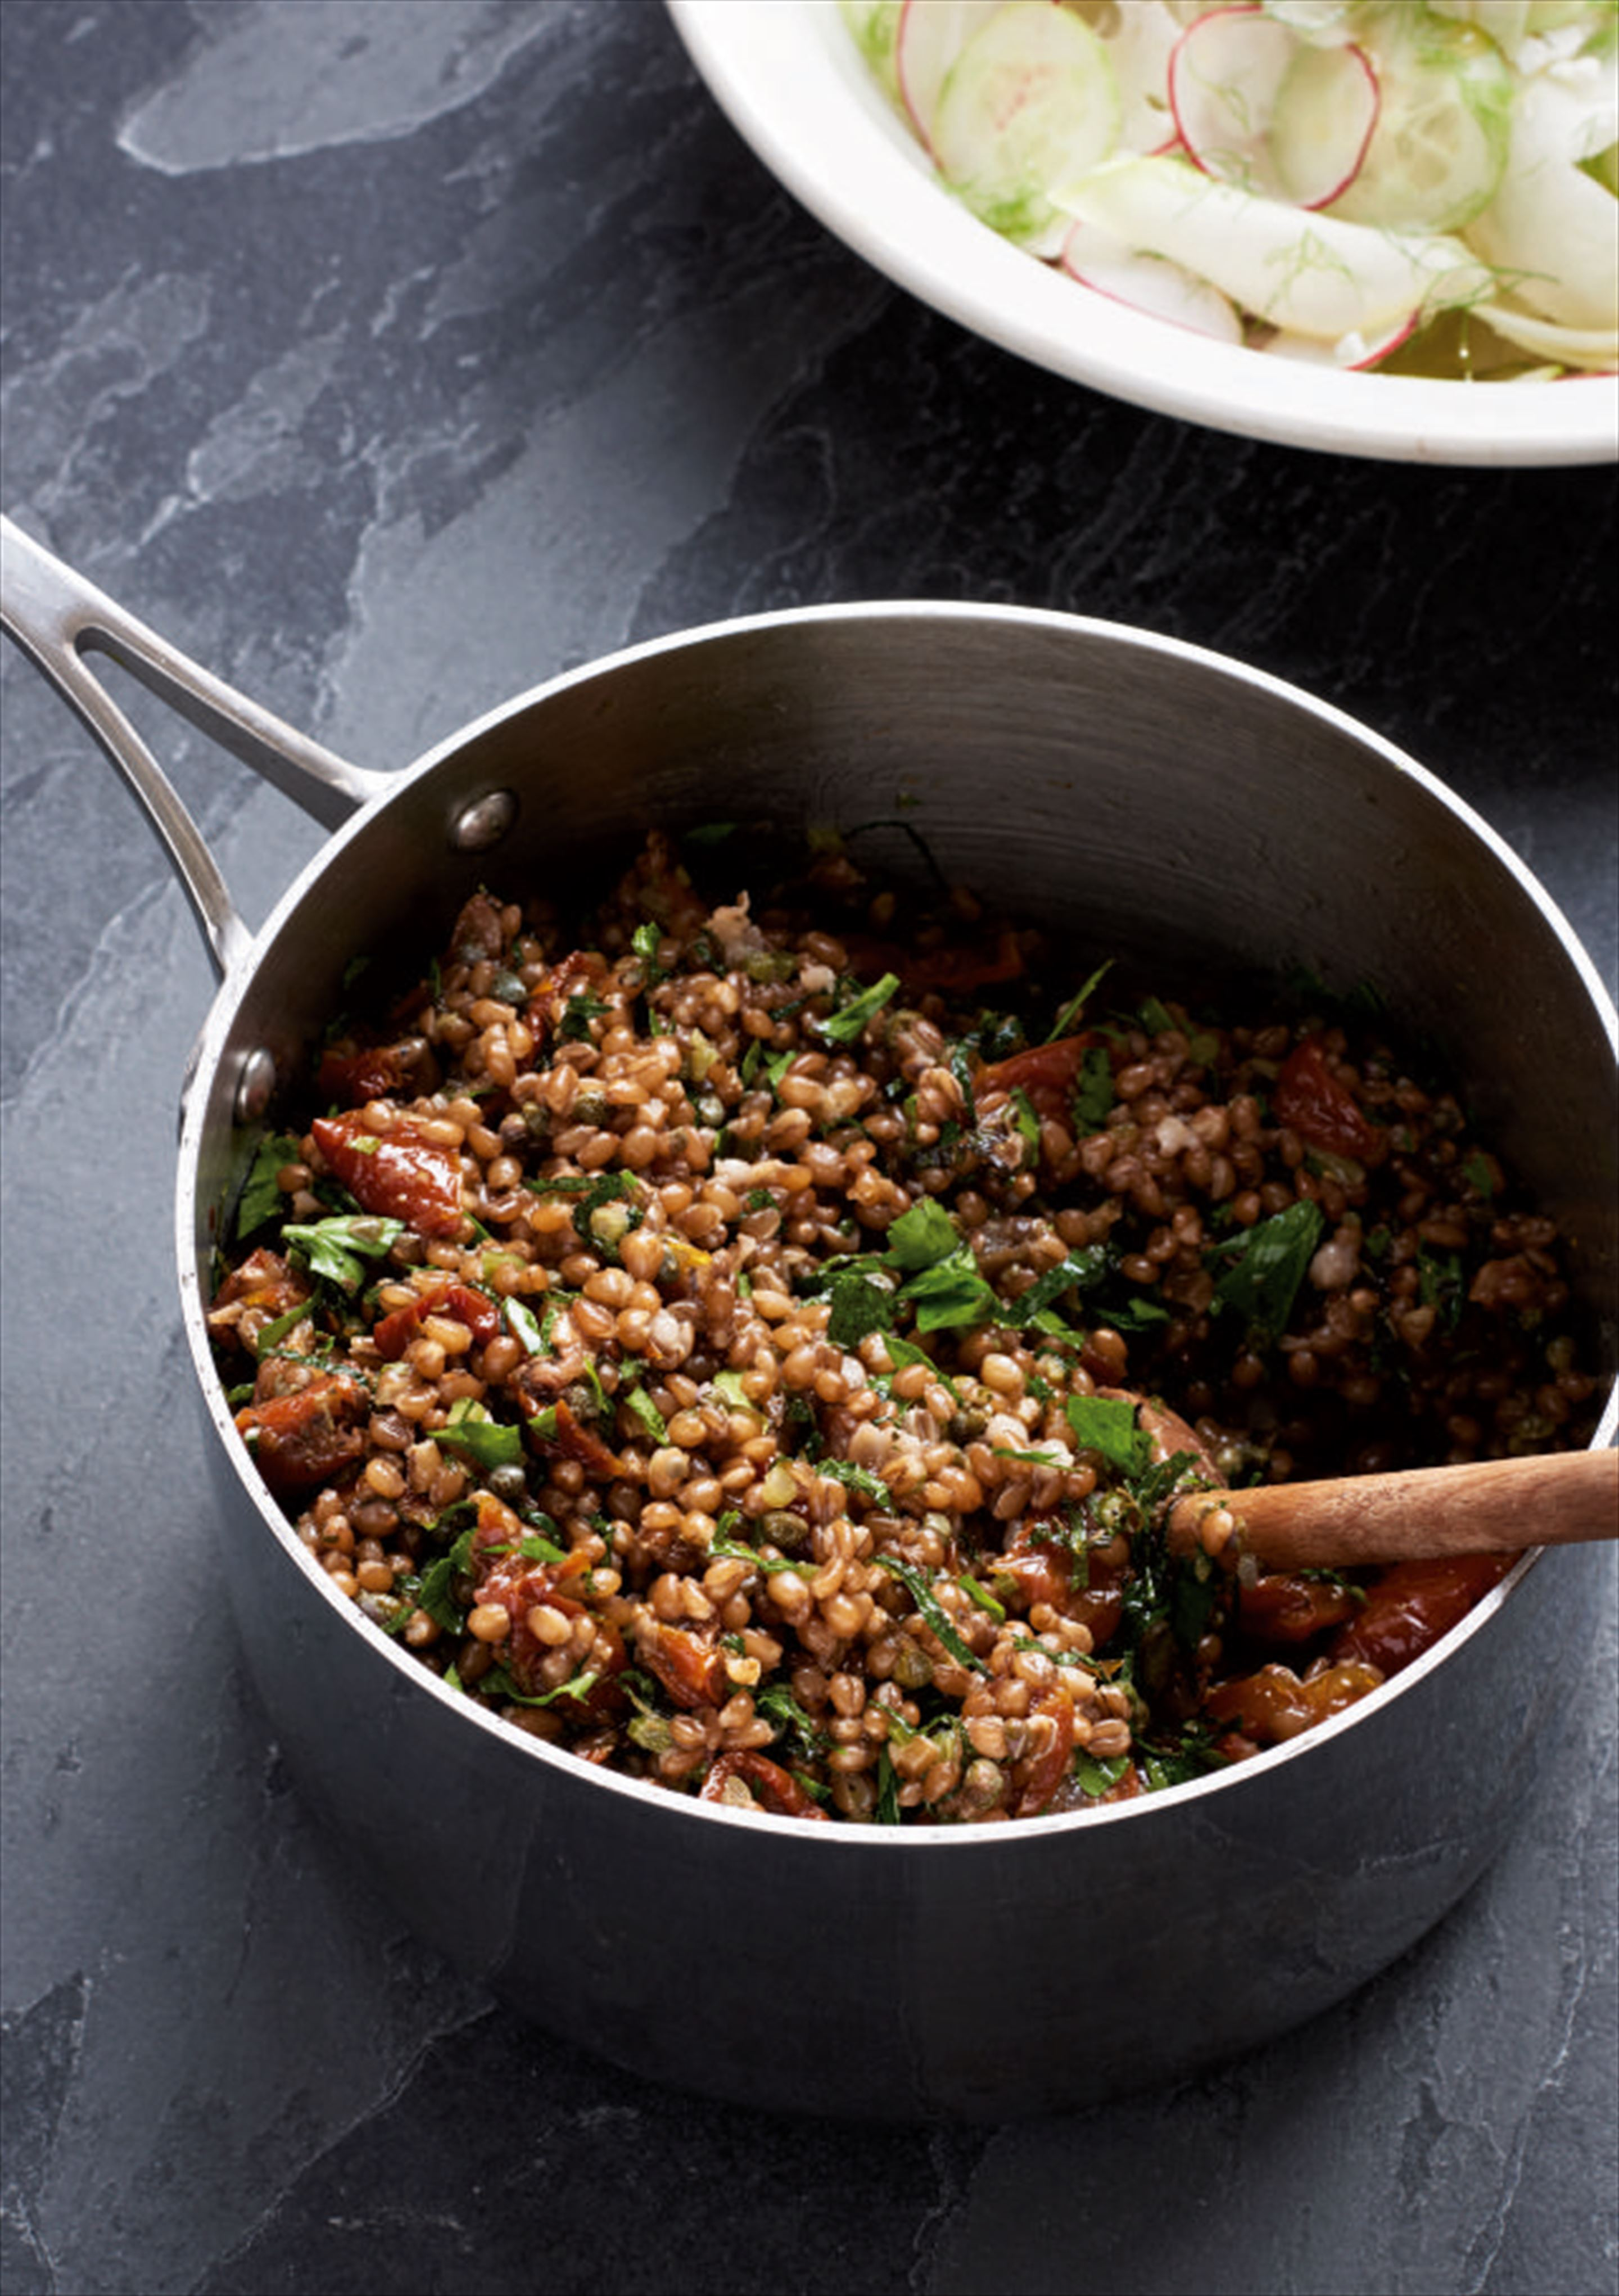 Wheat berries with capers and tomatoes